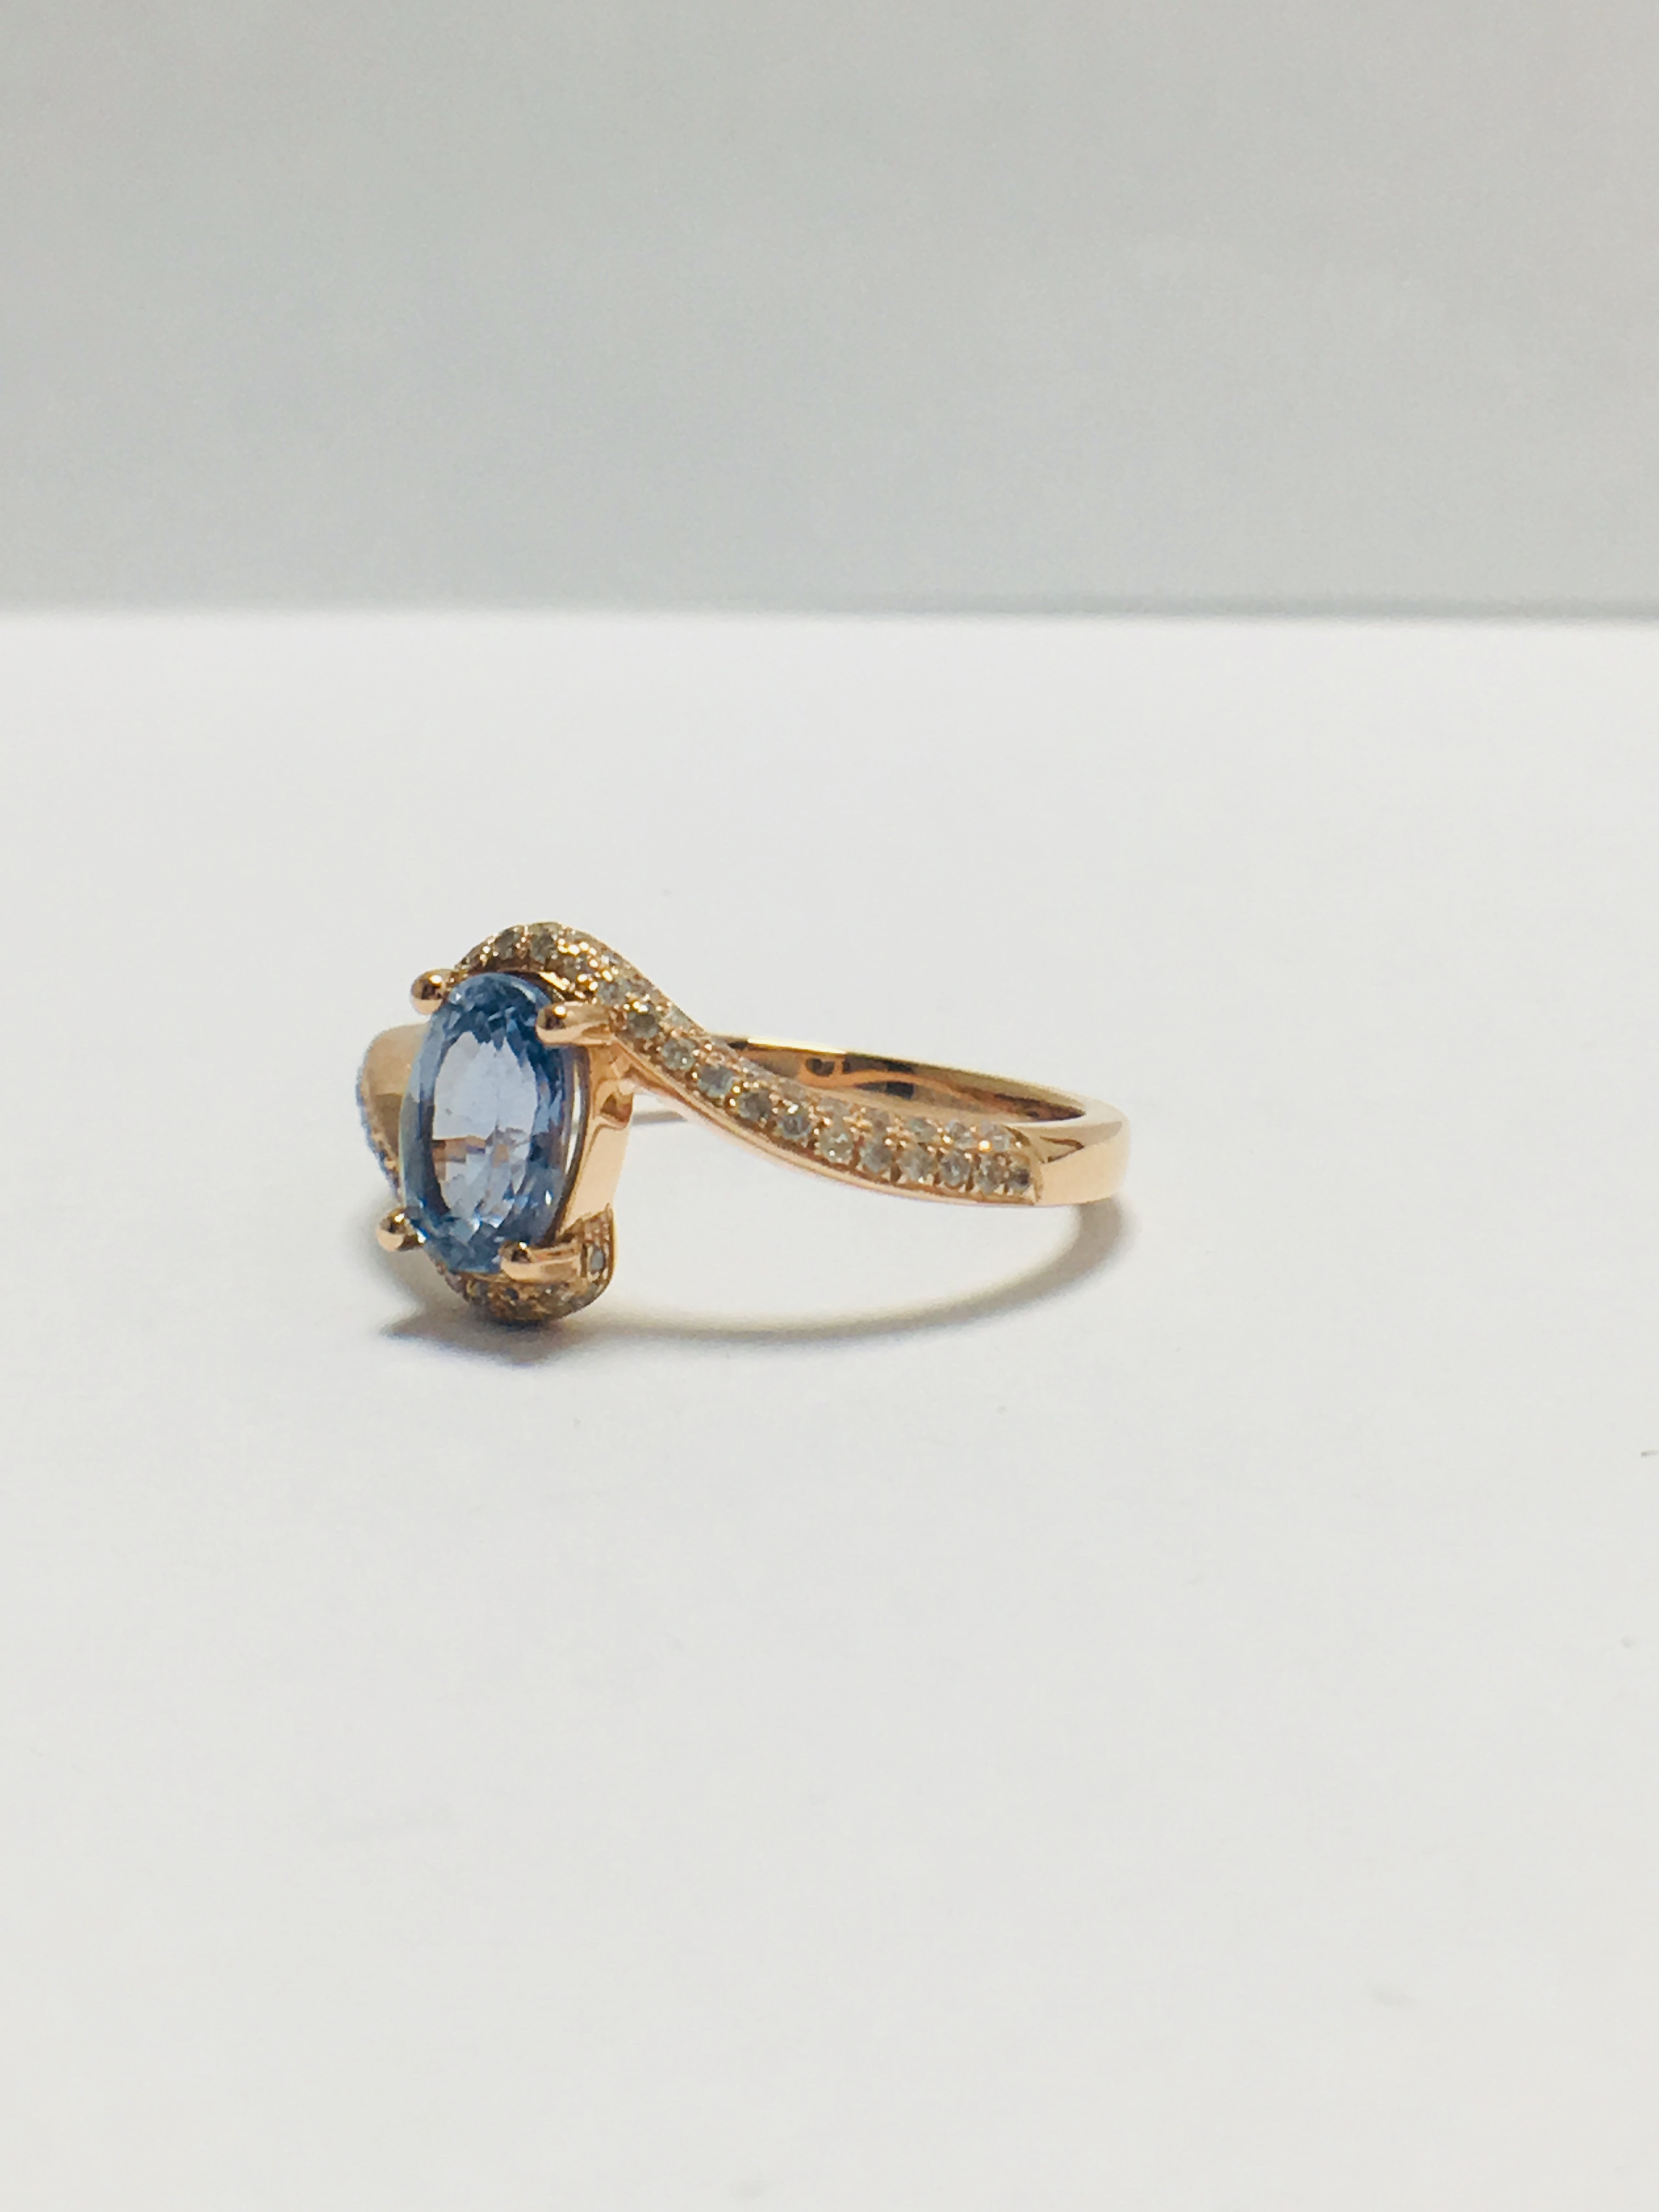 14ct rose gold sapphire and diamond ring - Image 2 of 9